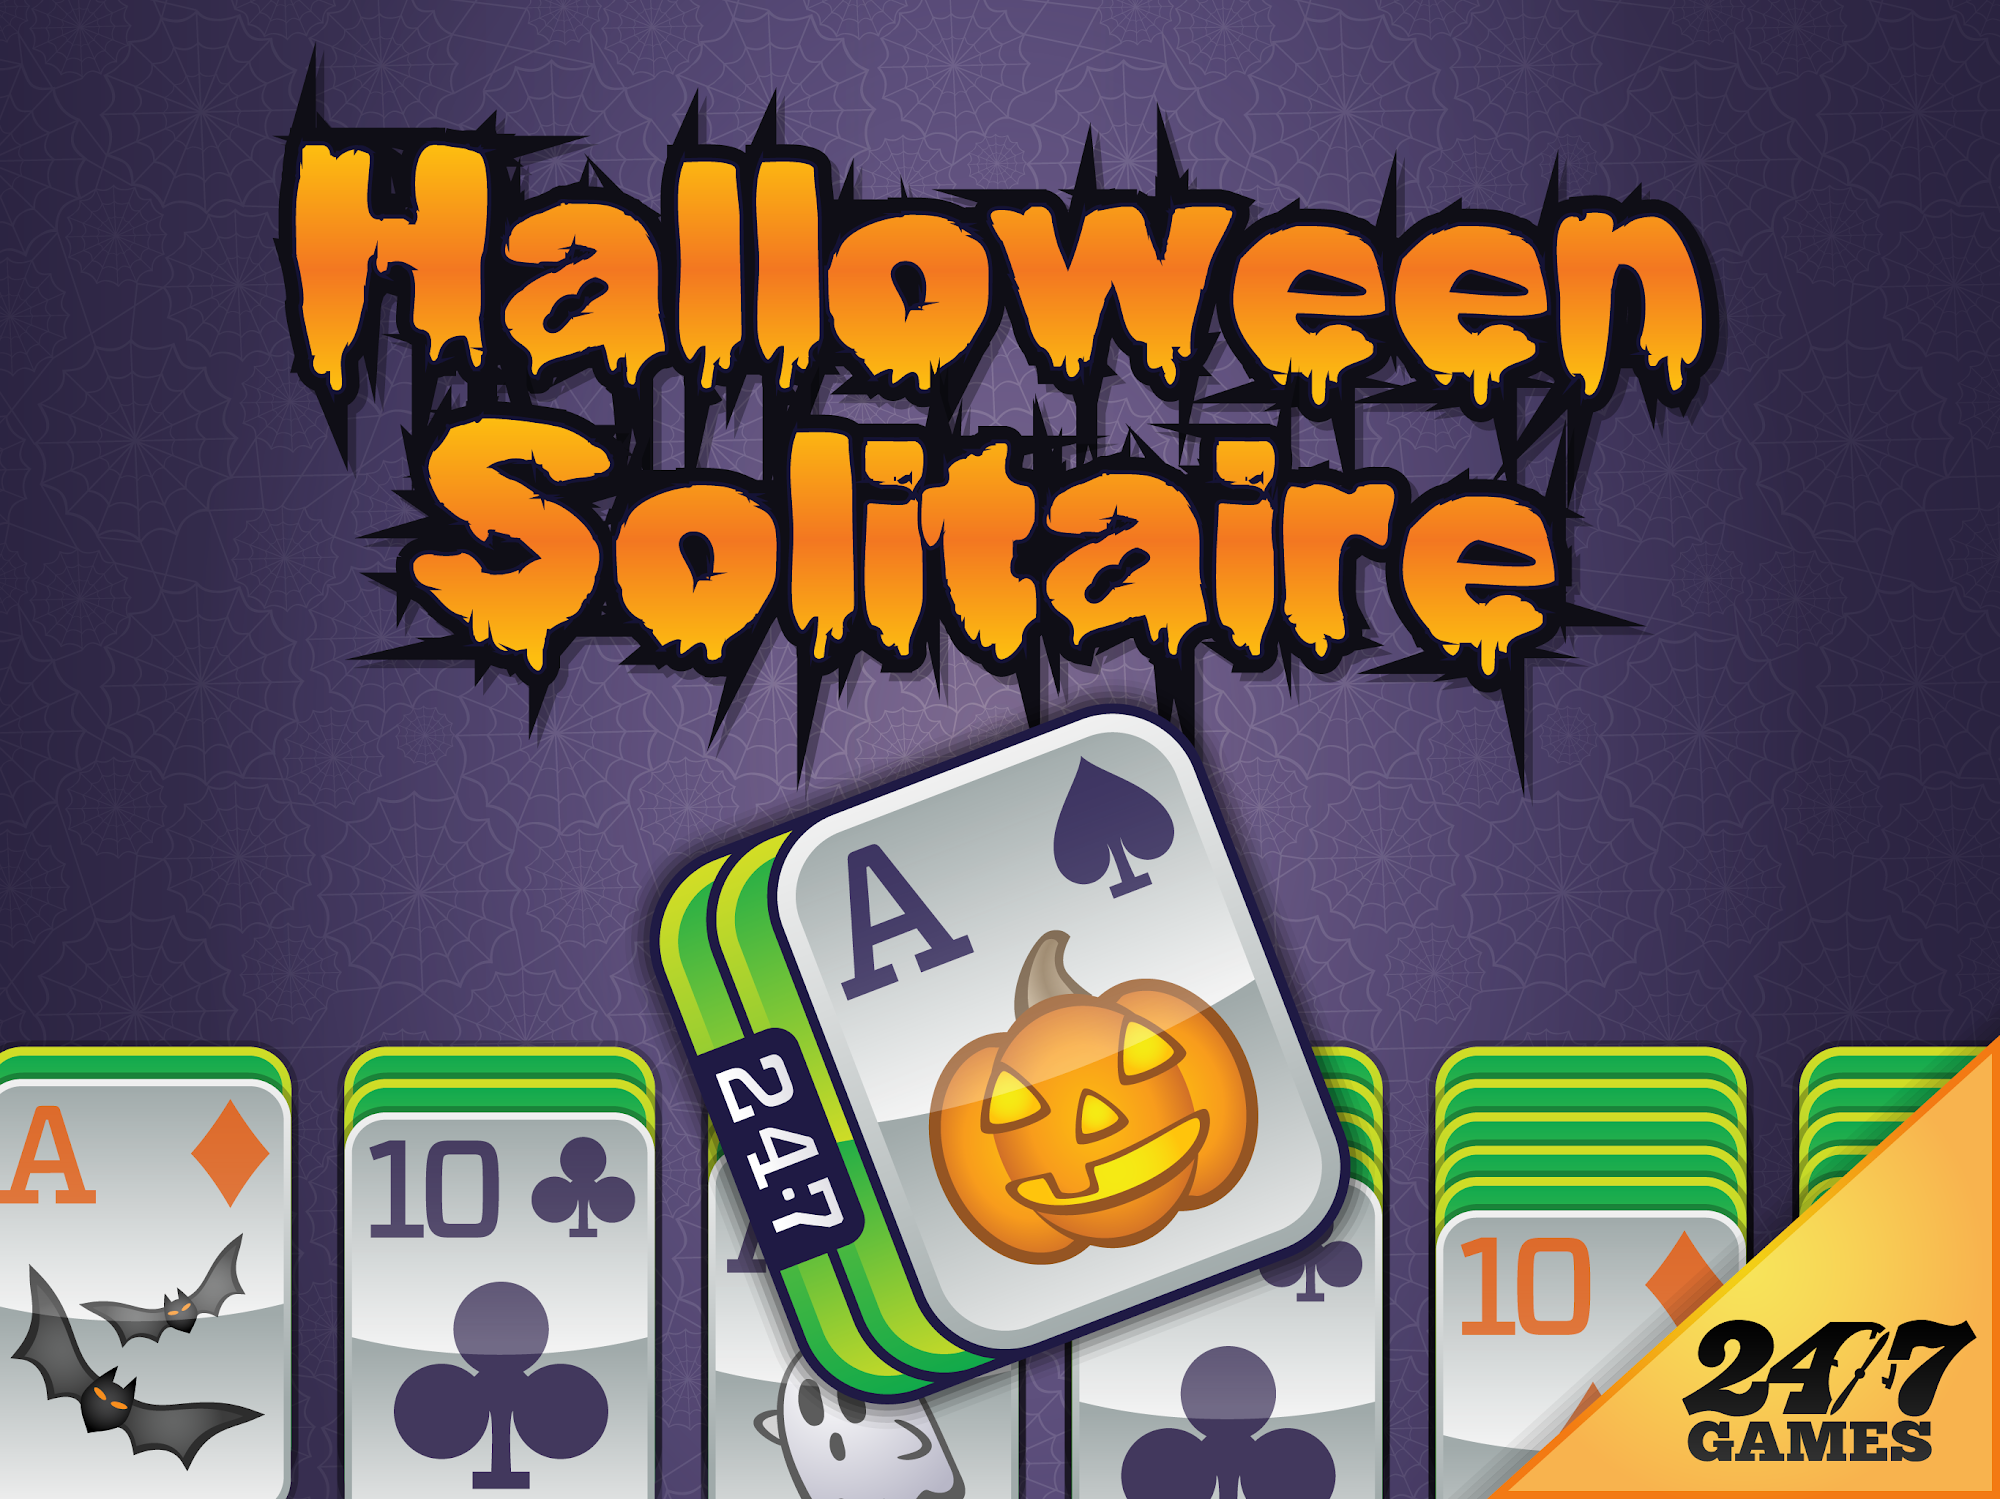 Halloween Solitaire (Android) reviews at Android Quality Index